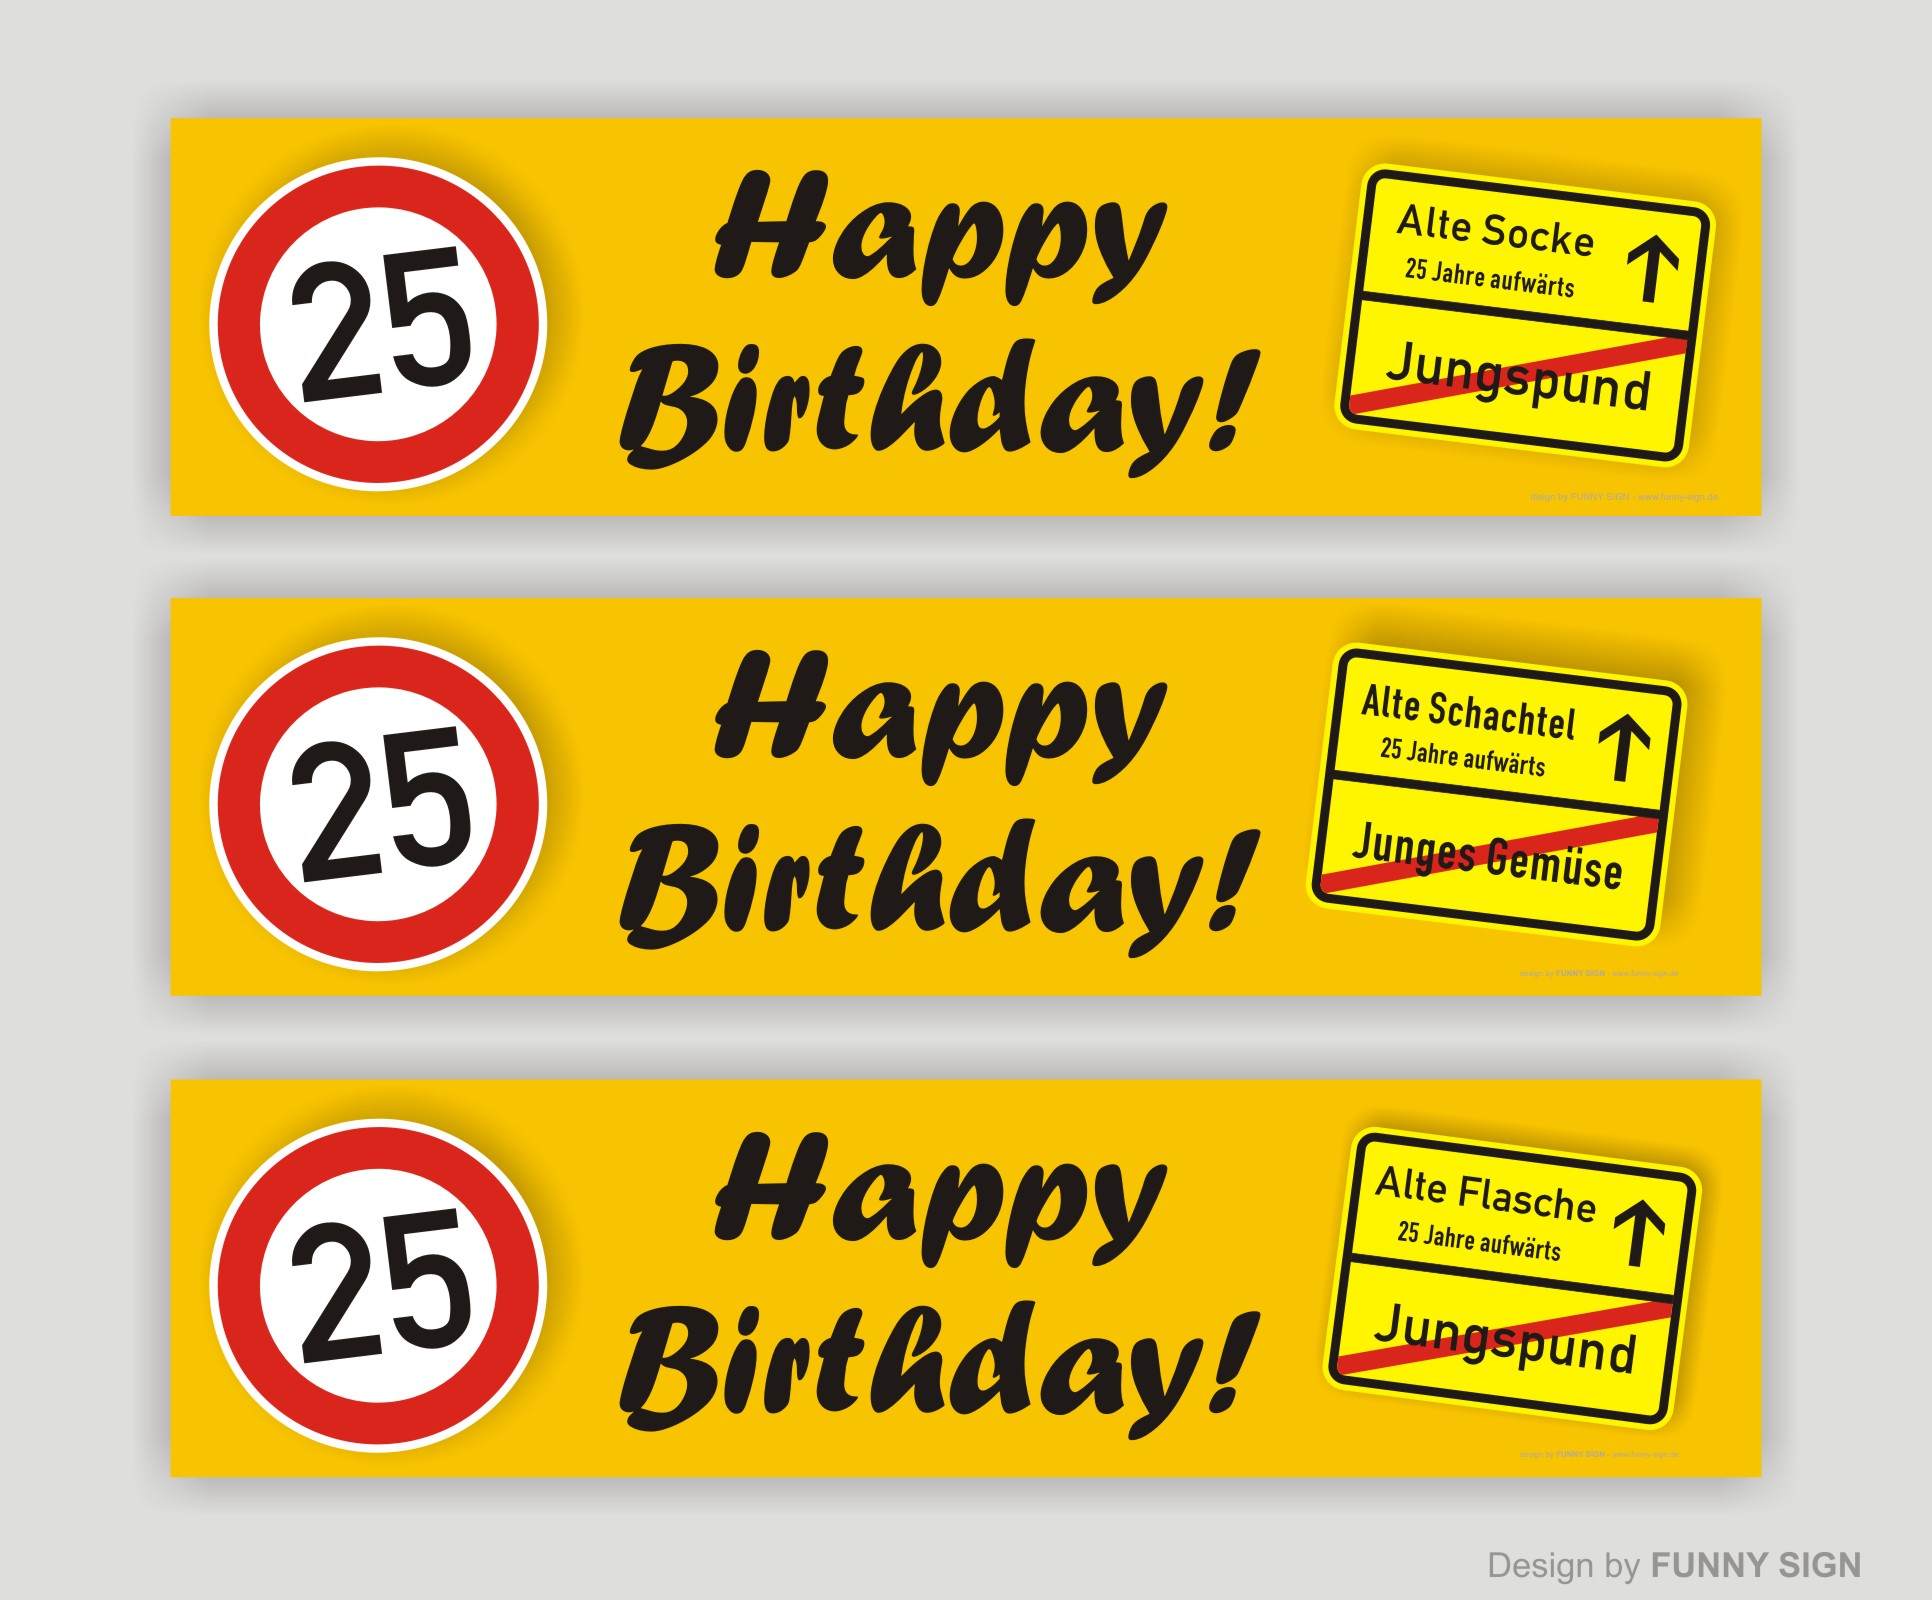 Pin grafik schachtel on pinterest - 25 geburtstag bilder ...